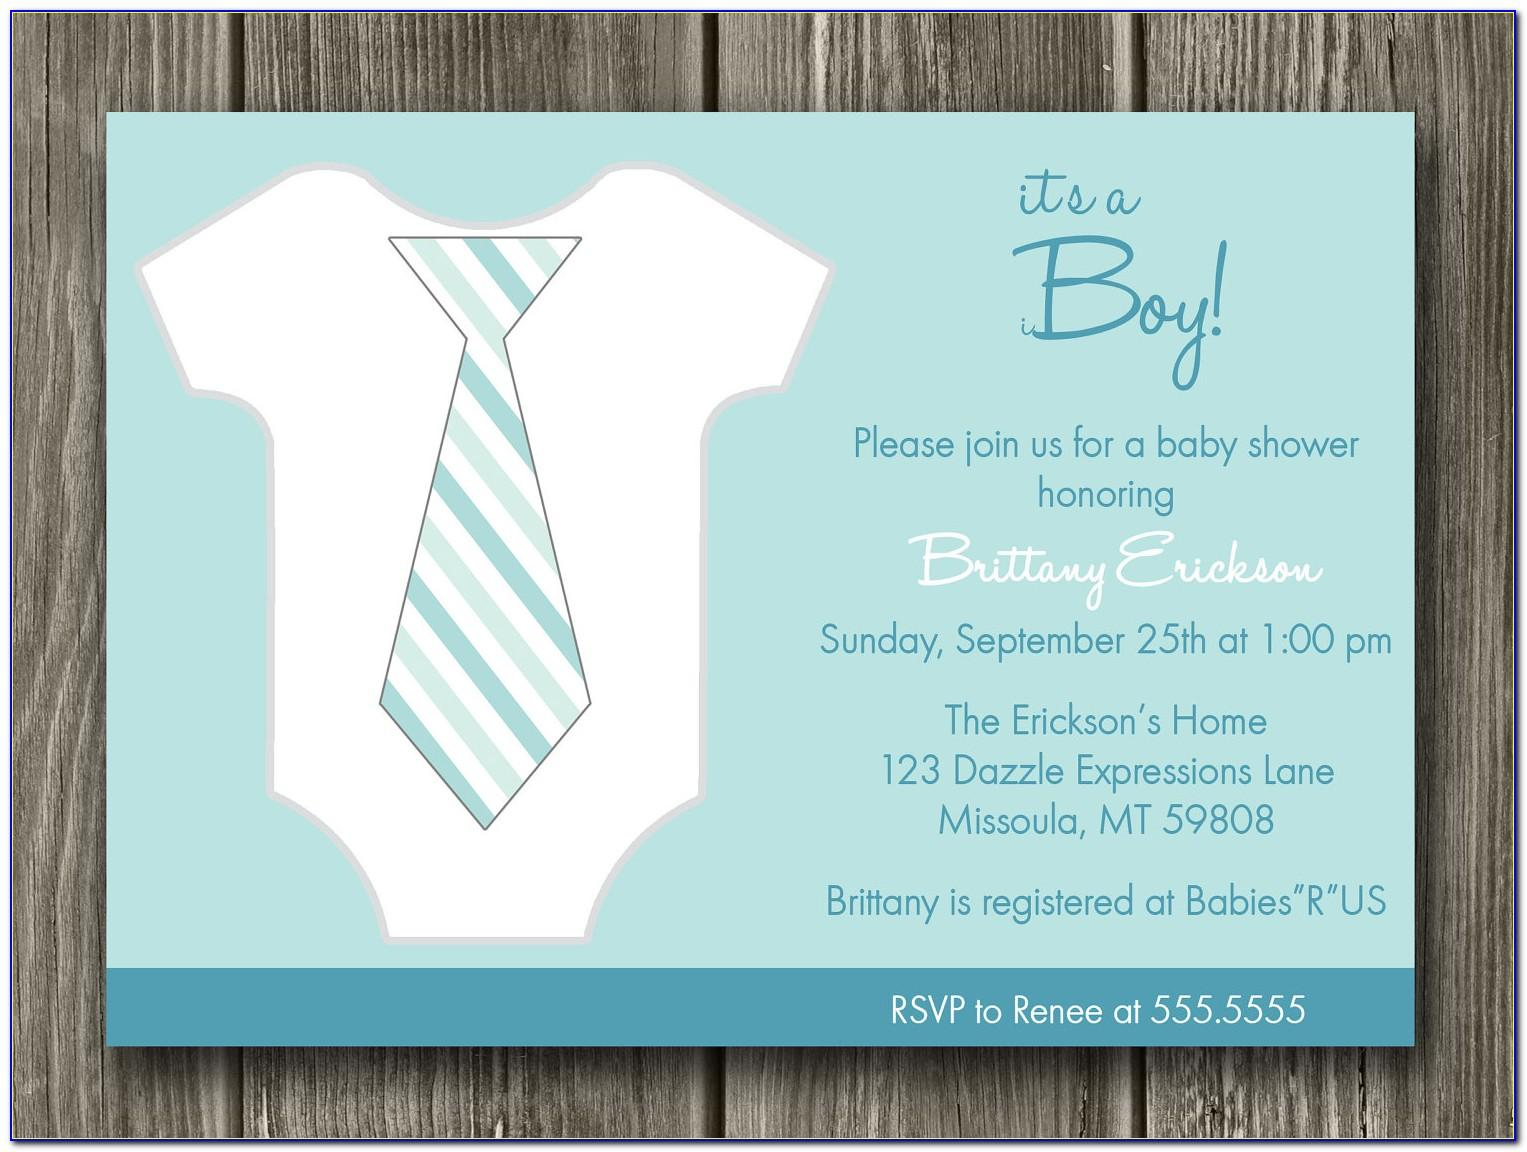 Child Dedication Invitation Template